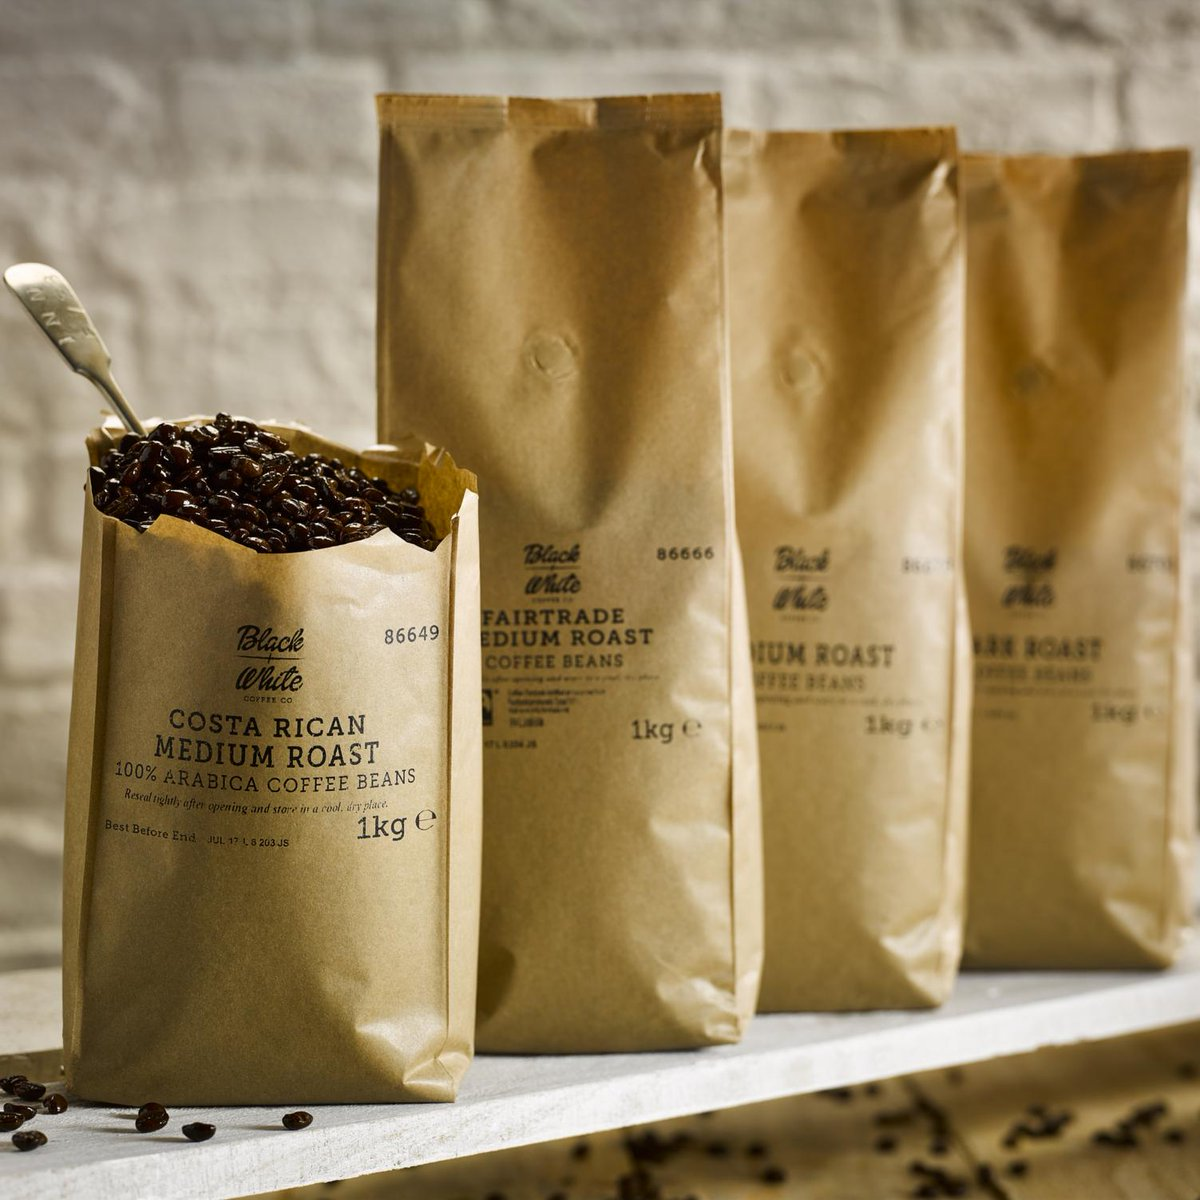 Bidfood Uk On Twitter Check Out Our Black White Coffee Co Guide Delicious Quality Perfect For A Fridayfeeling